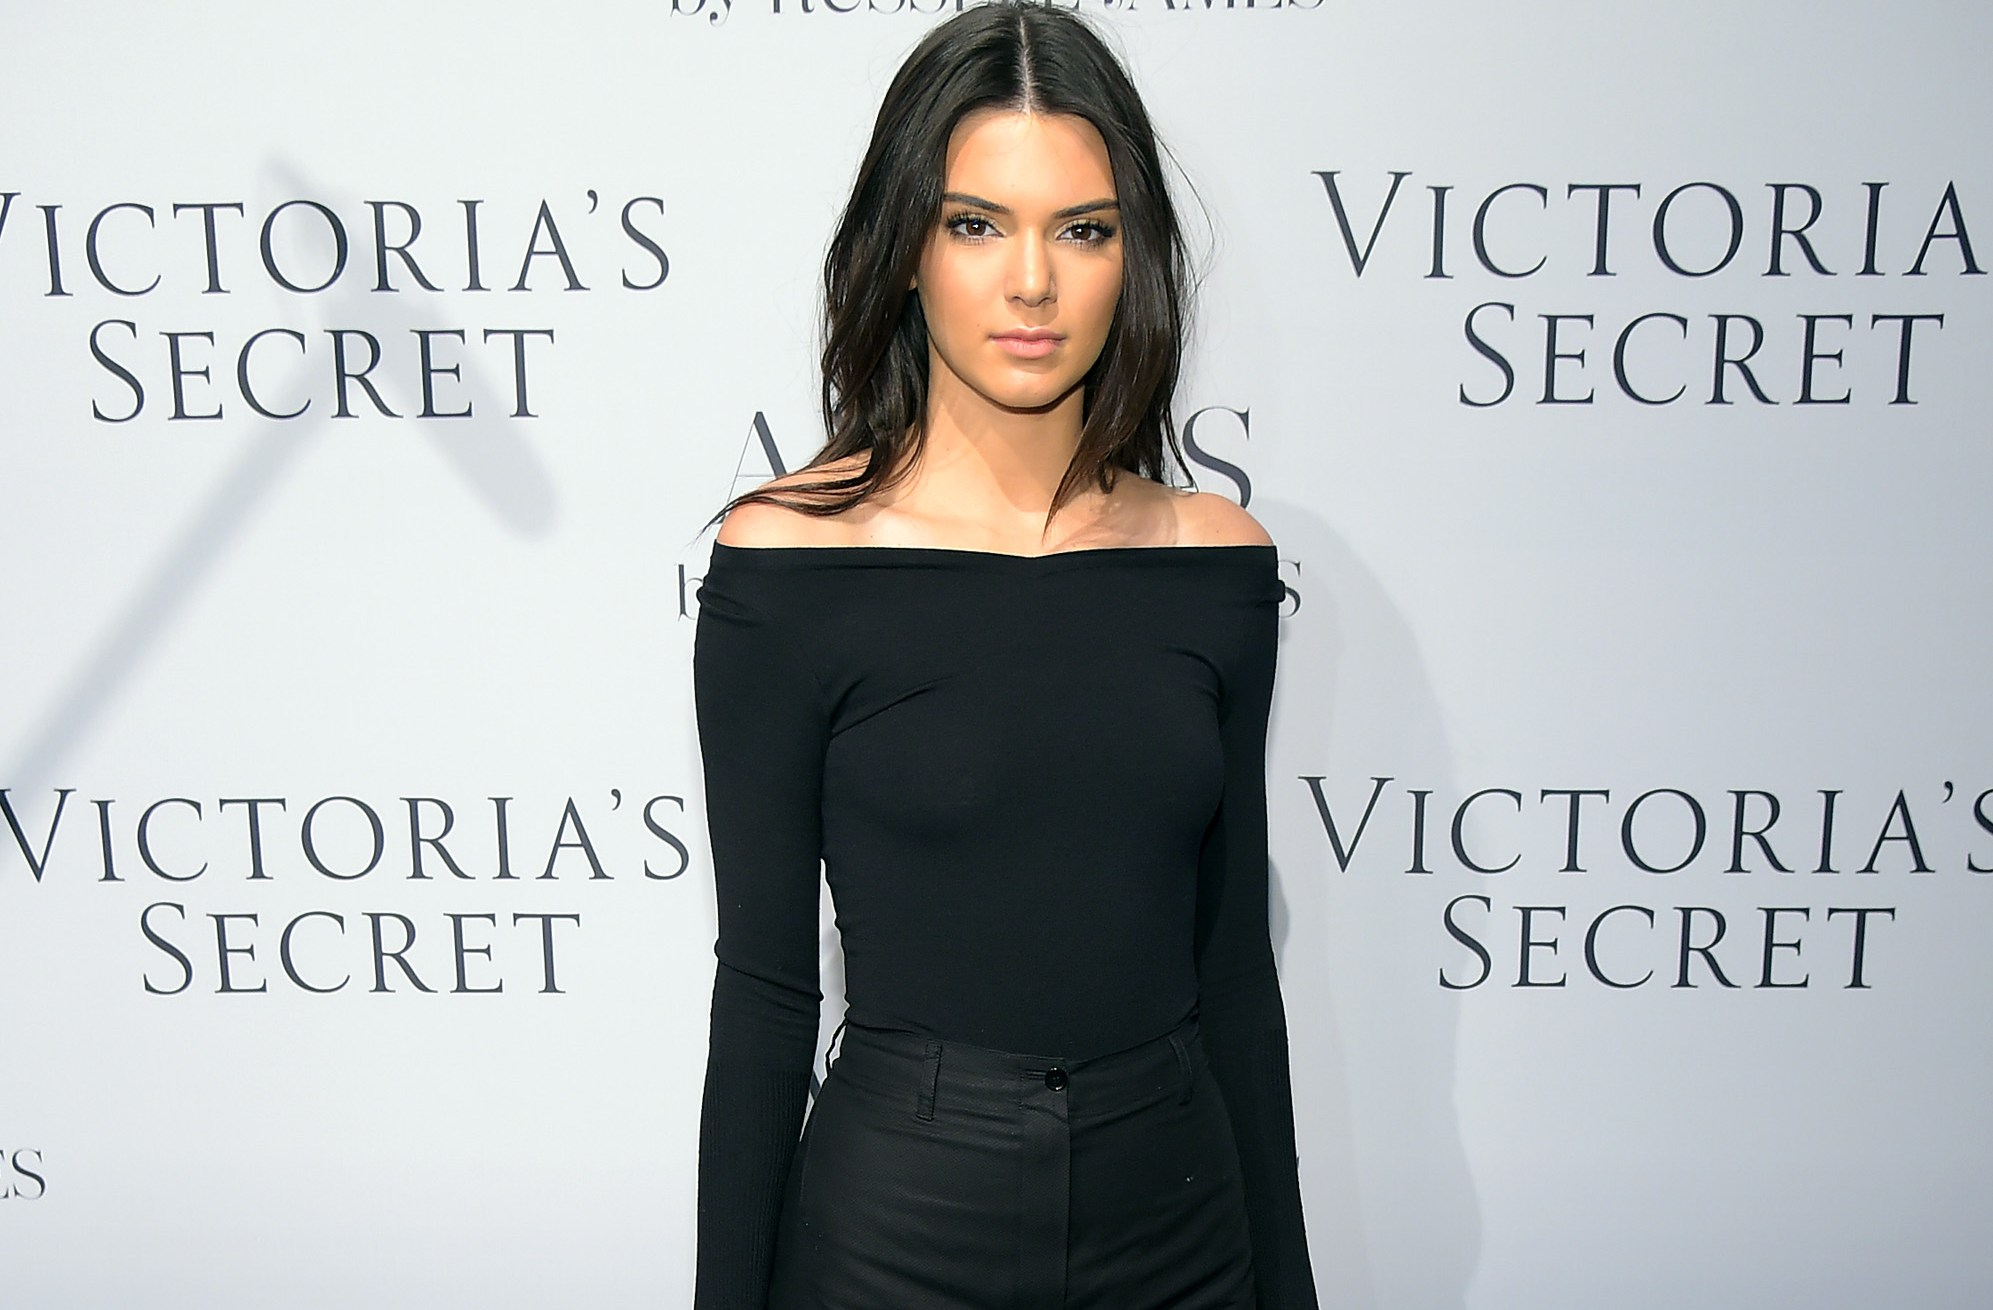 Photo by Michael Loccisano/Getty Images for Victoria's Secret